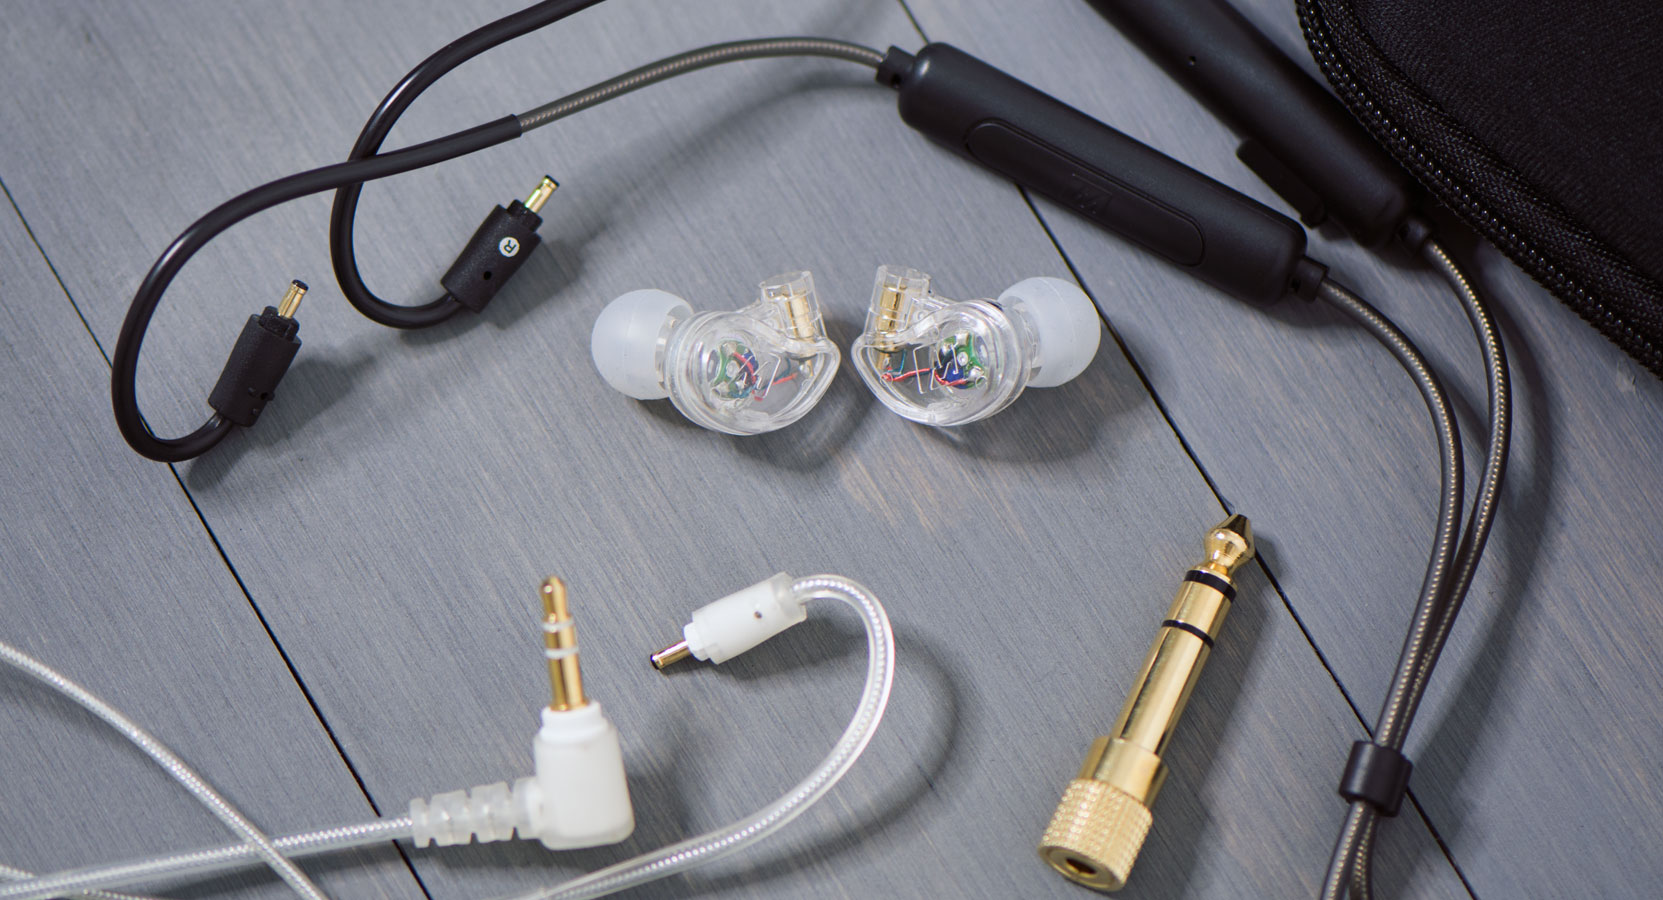 Wired + Wireless In Ear Monitors Combo Pack with Bluetooth cable, earpieces, stereo audio cable, and 1/4